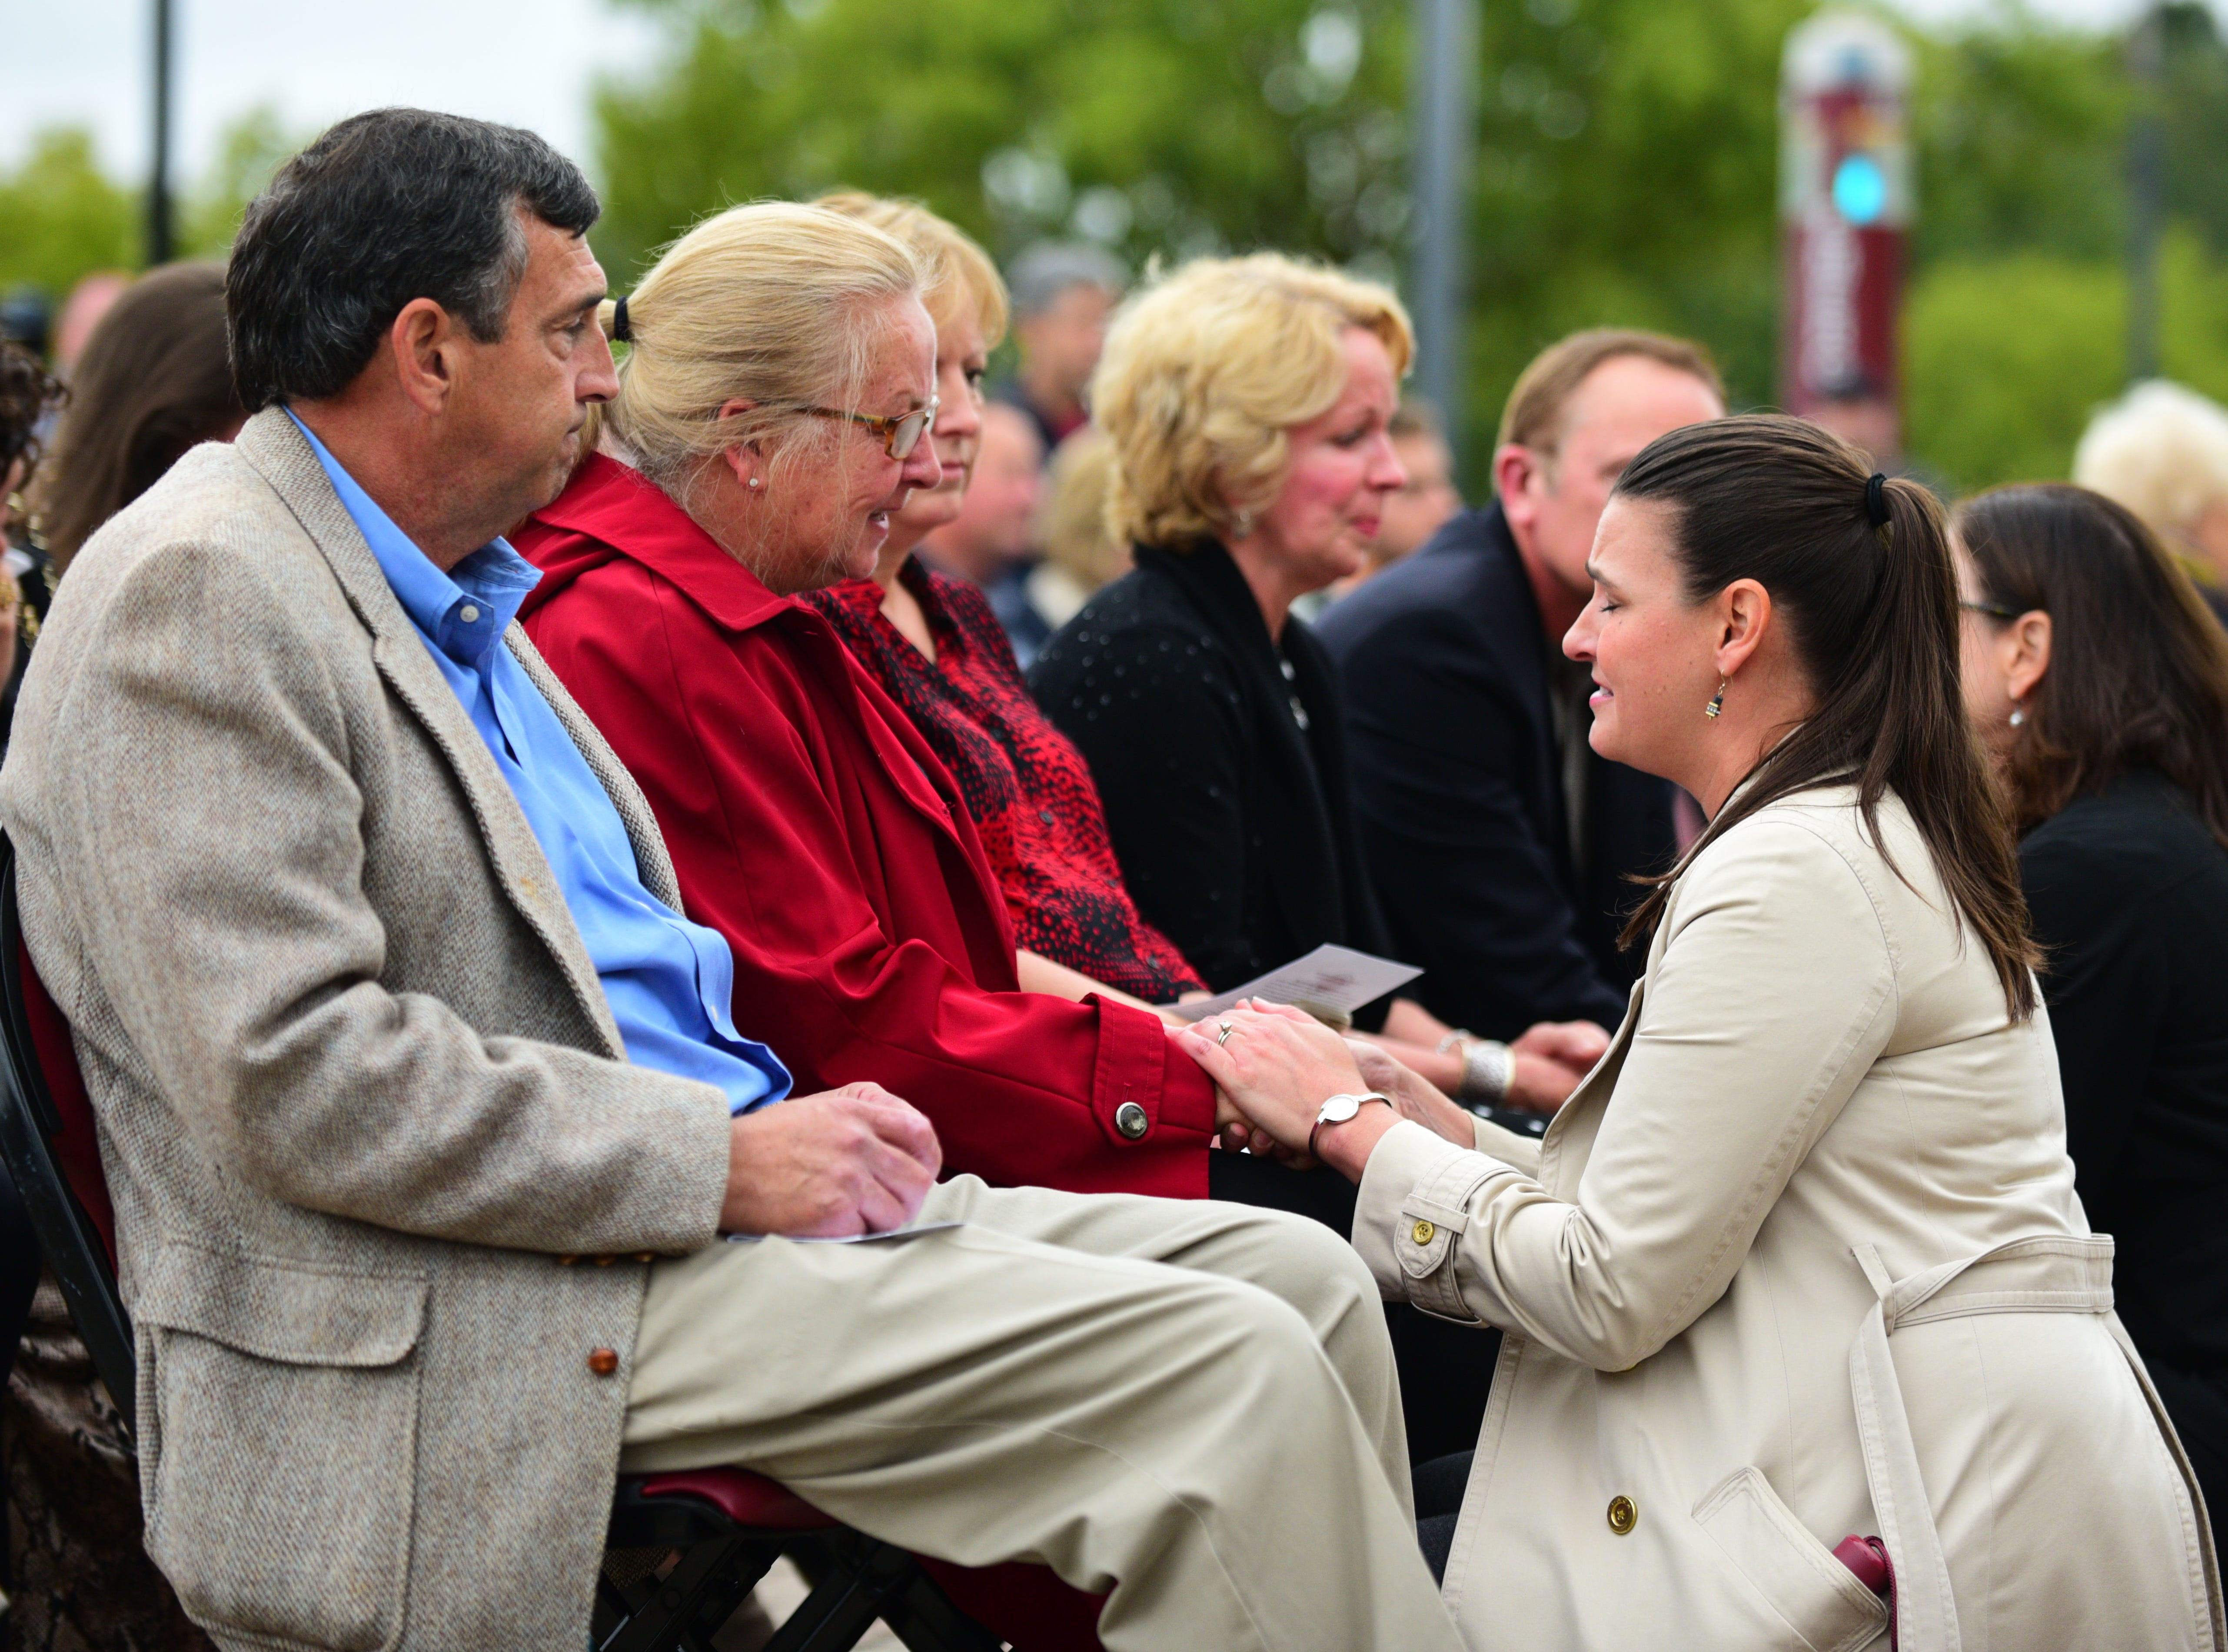 Florida State University faculty members comfort the grieving families of Maura Binkley and Dr. Nancy Van Vessem at a vigil at Langford Green on Sunday.